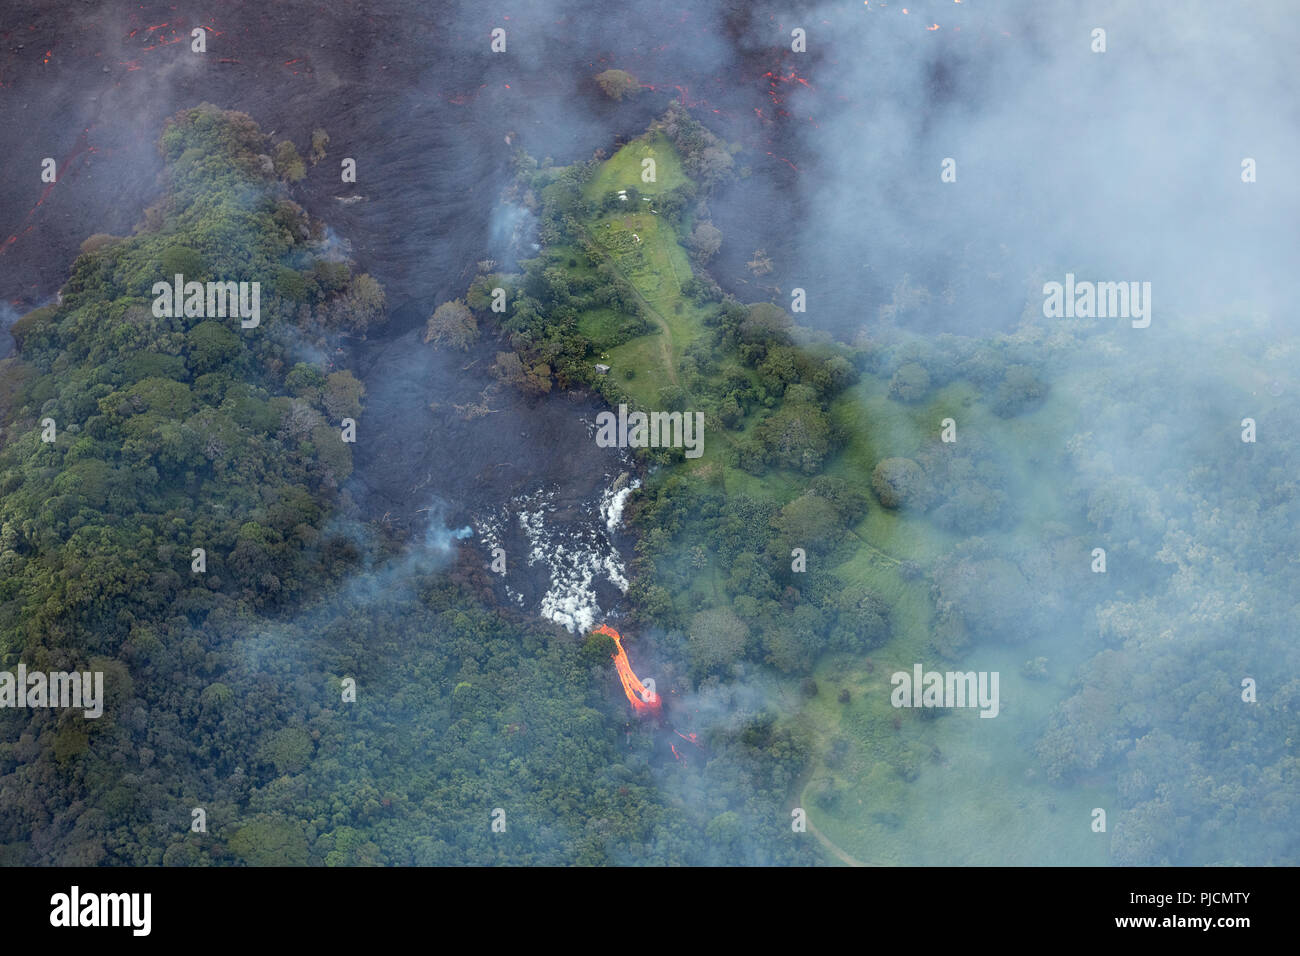 lava originating from Kilauea Volcano, erupting from fissure 8 in Leilani Estates, near Pahoa, flows through lower Puna District into Kapoho, forming  - Stock Image